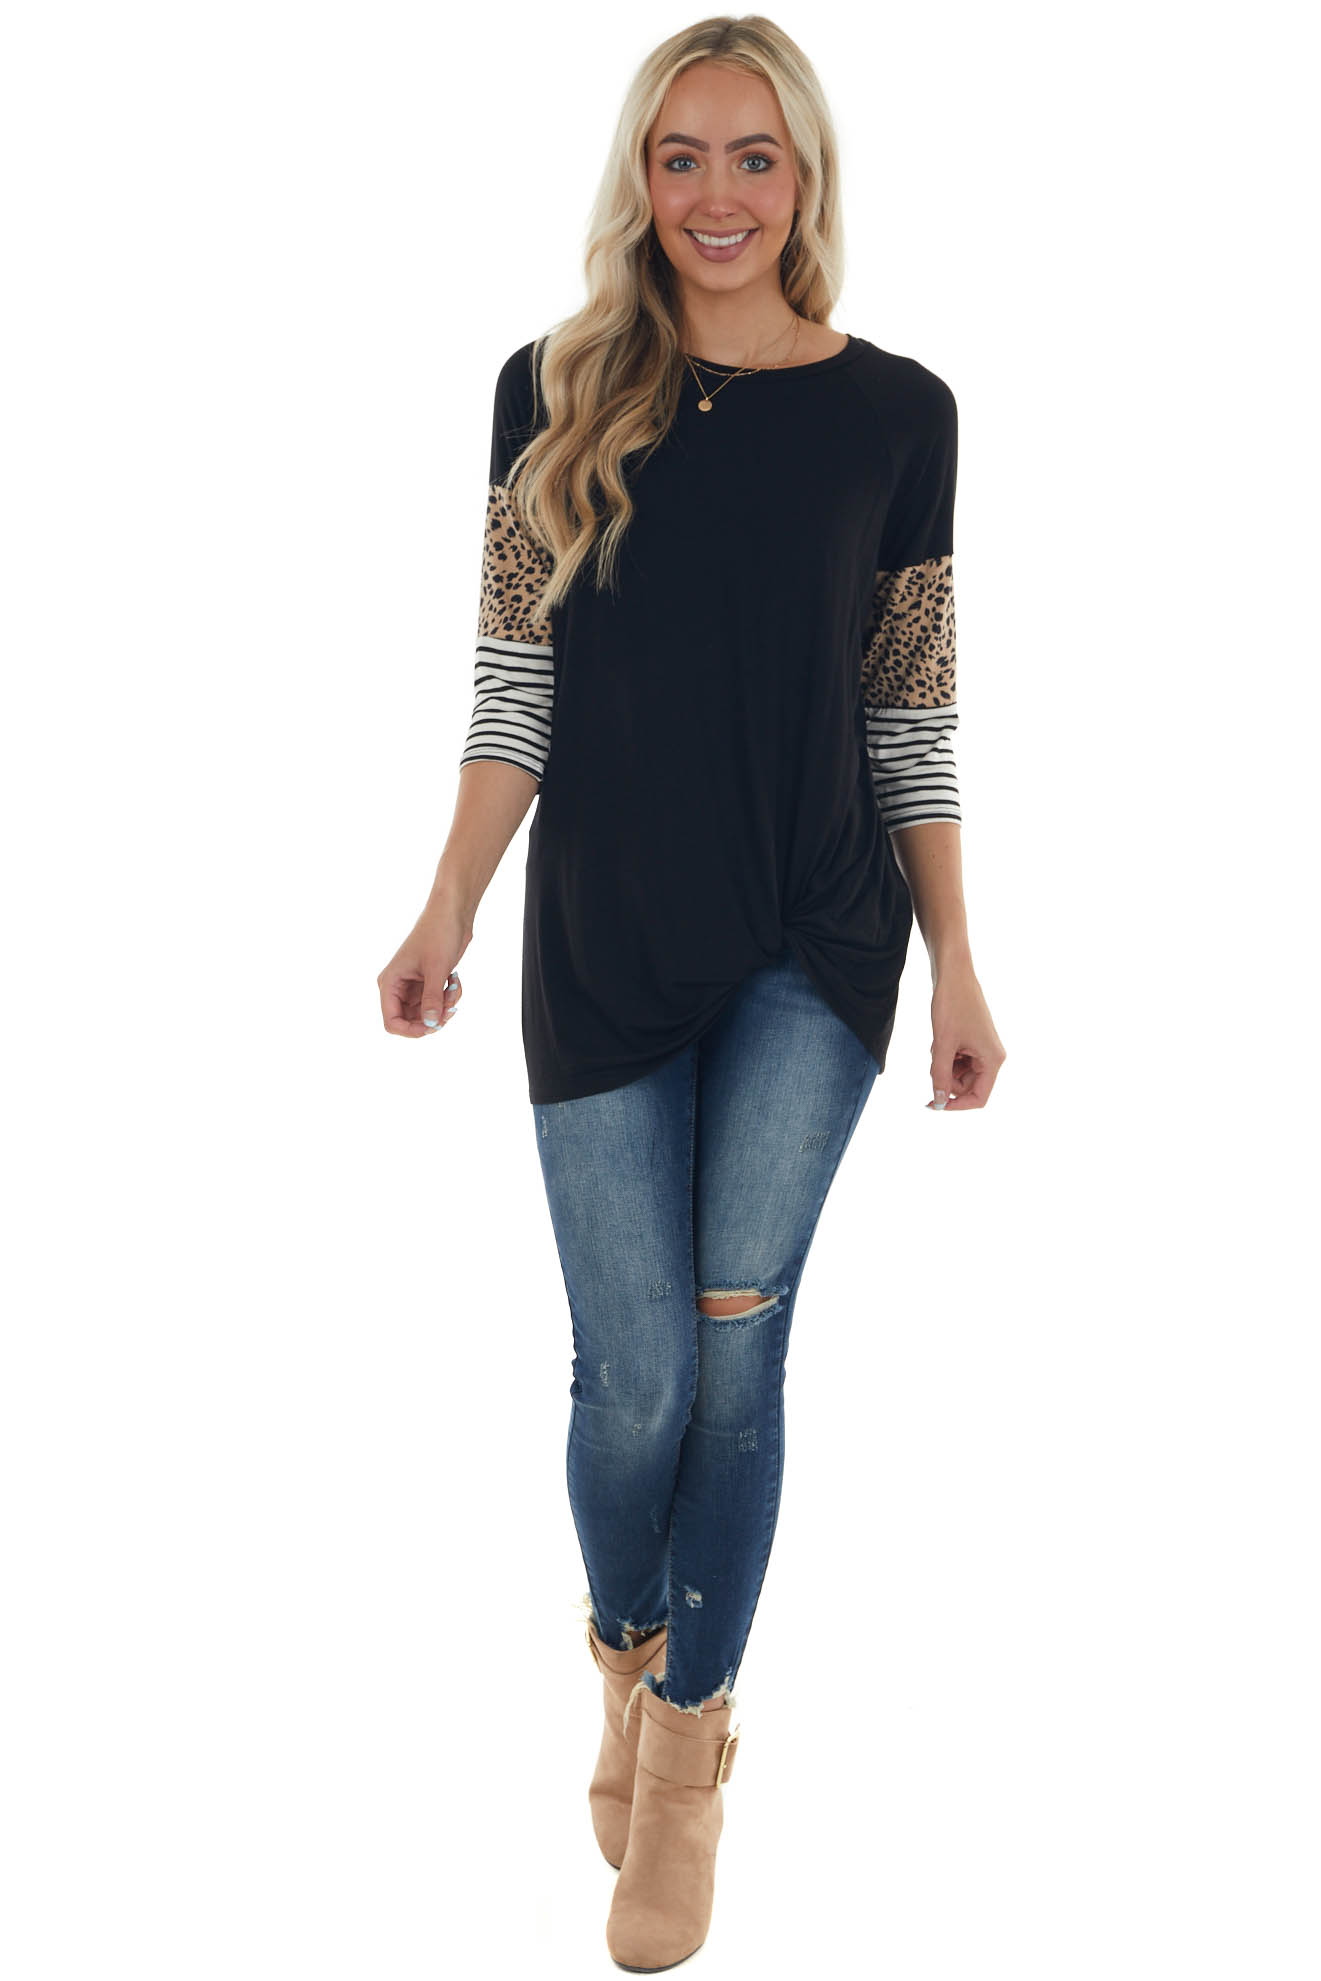 Black Multi Print Knit Top with 3/4 Sleeves